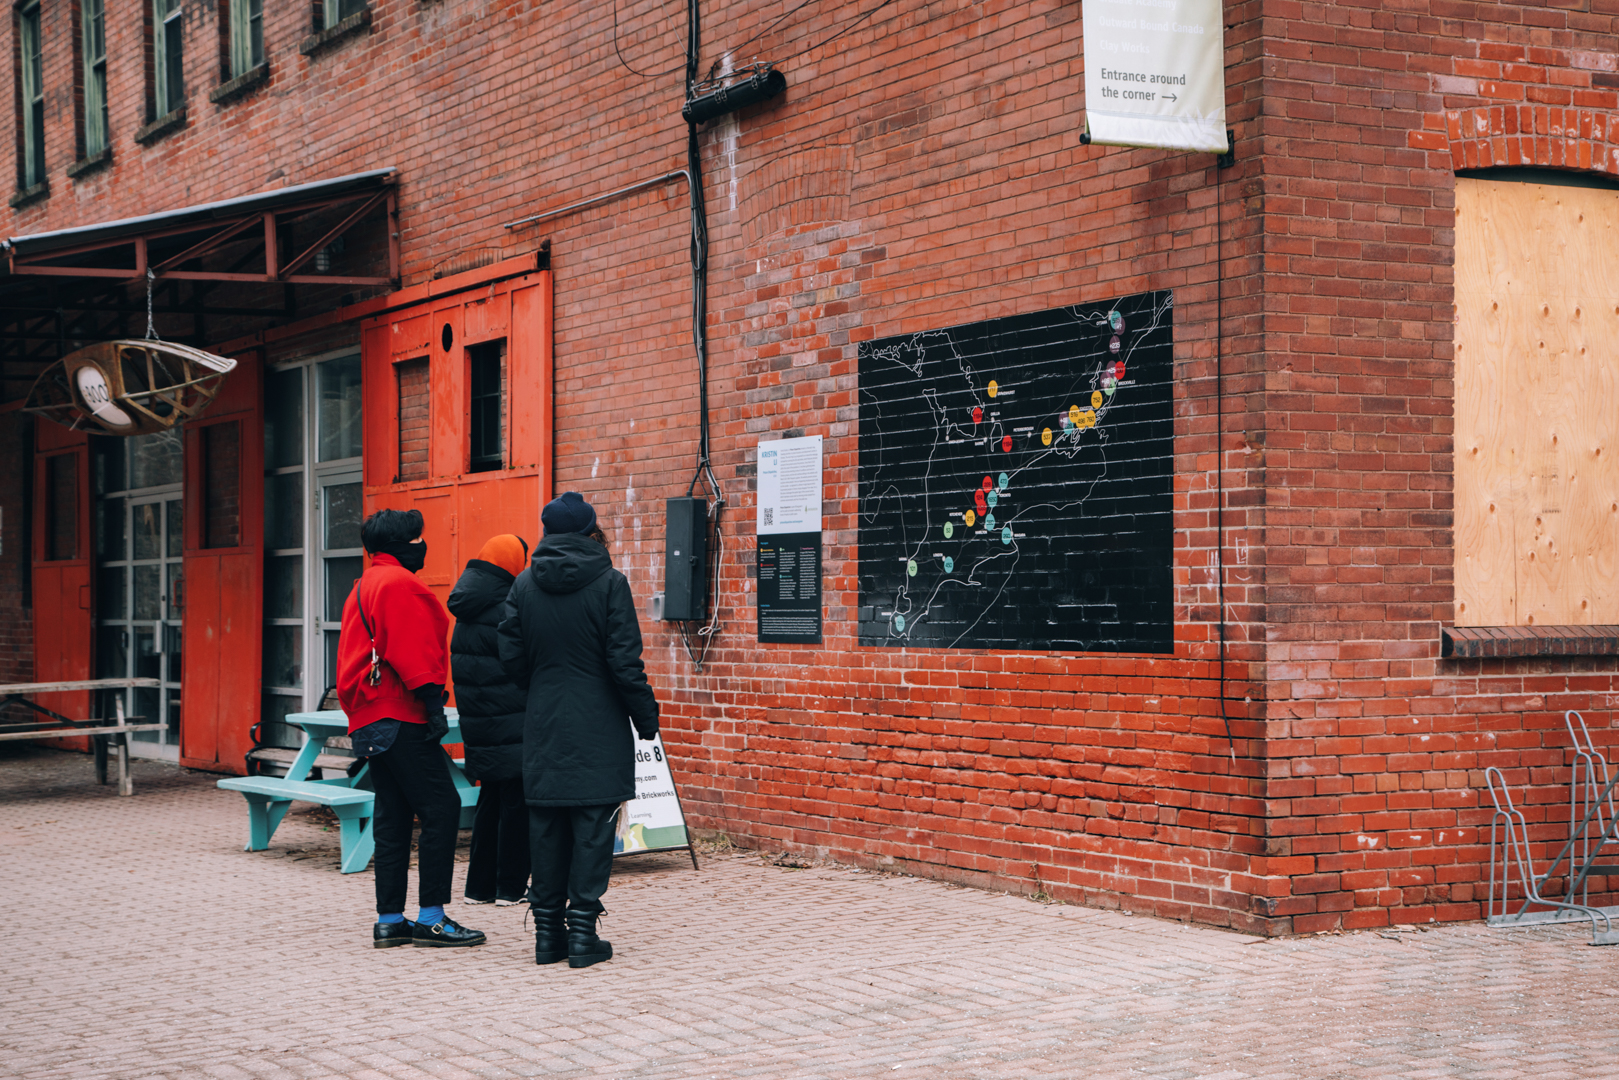 Three people look at a map on the side of a brick building